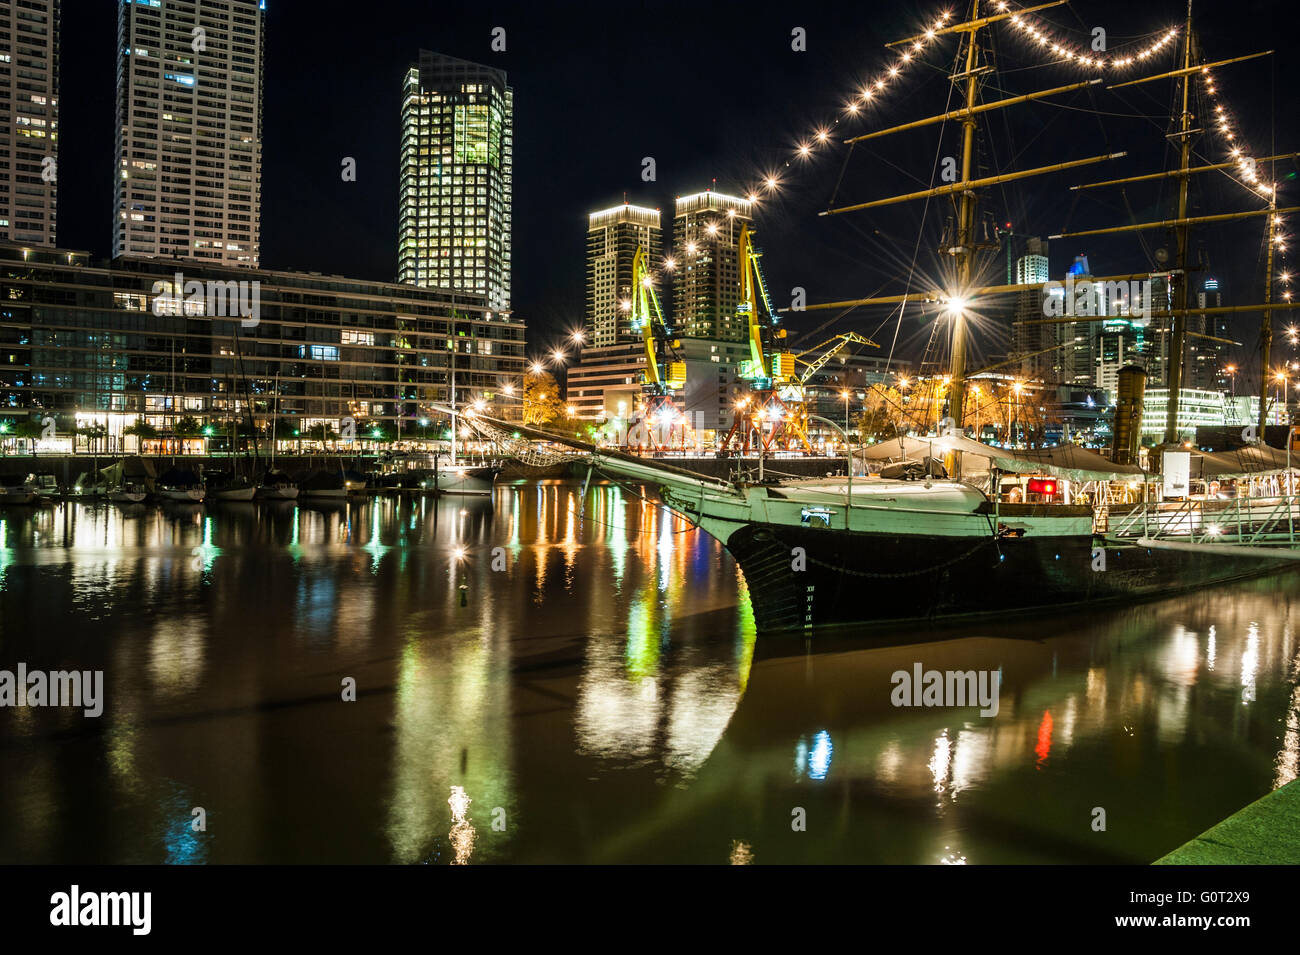 Puerto Madero at the Night, Buenos Aires, Argentina - Stock Image